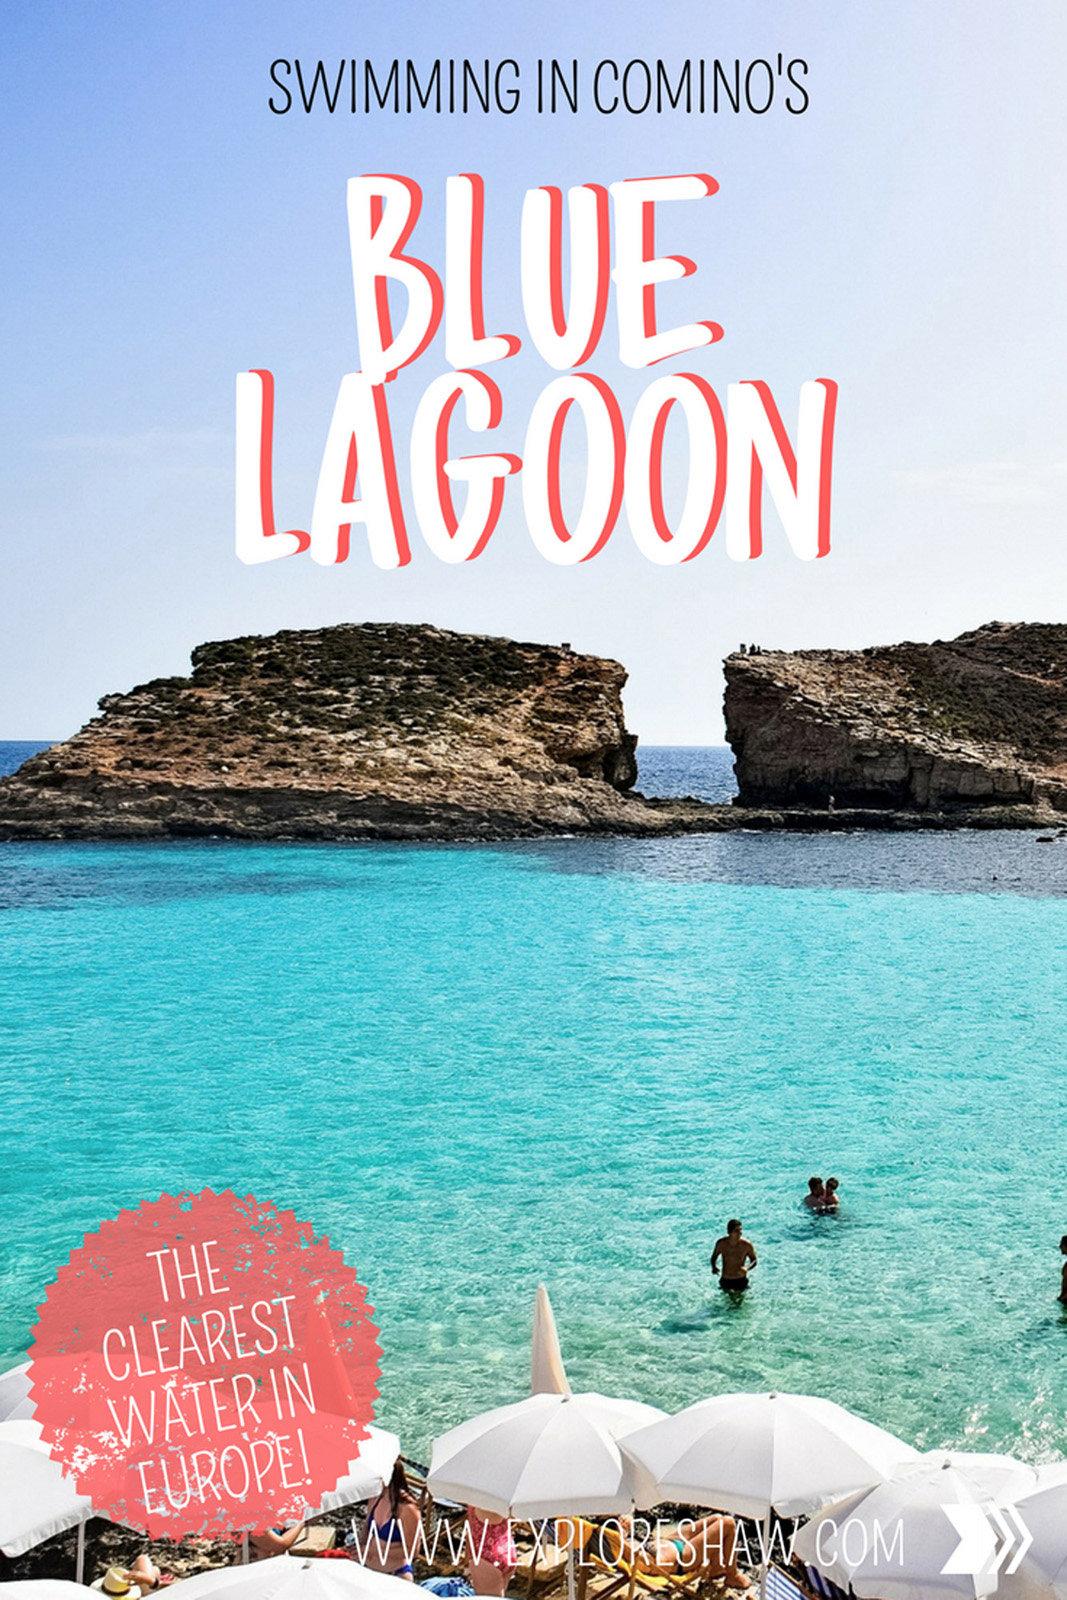 SWIMMING IN COMINO'S BLUE LAGOON